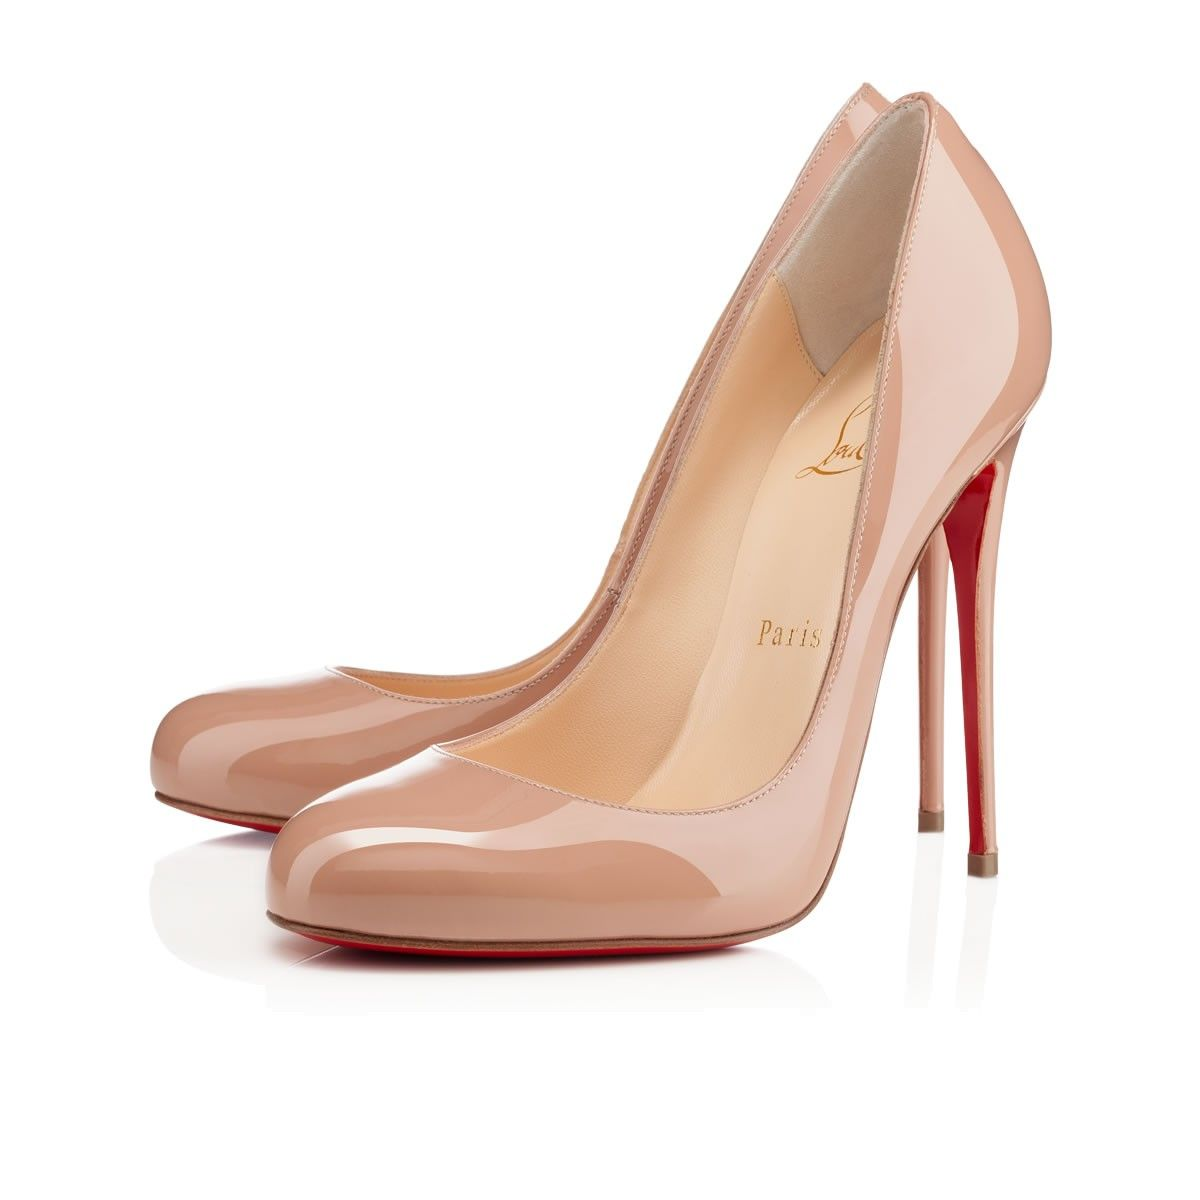 chaussure louboutin femme mariage